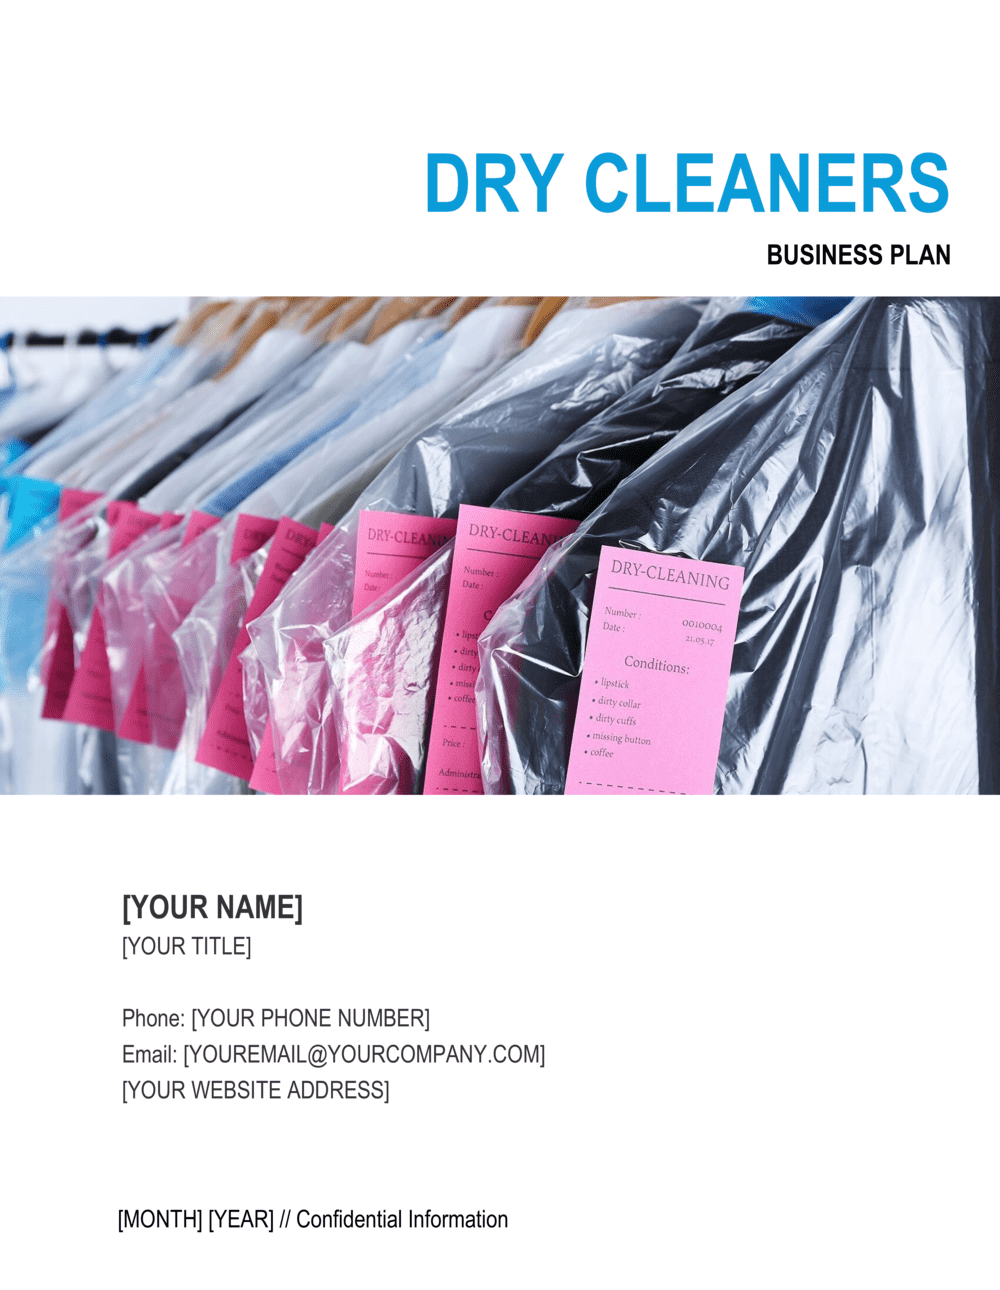 Free dry cleaning business plan ap lit essay prompts heart of darkness